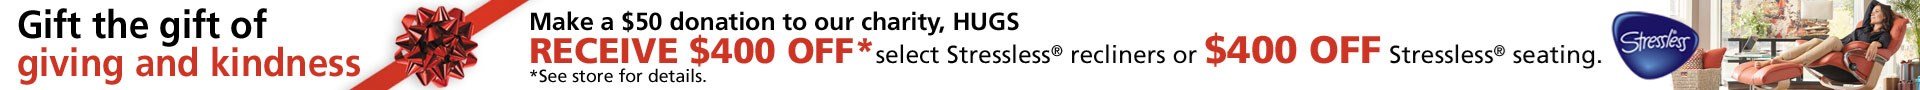 $400 off select Stressless recliners or seating with $50 donation to HUGS charity; see store for details.